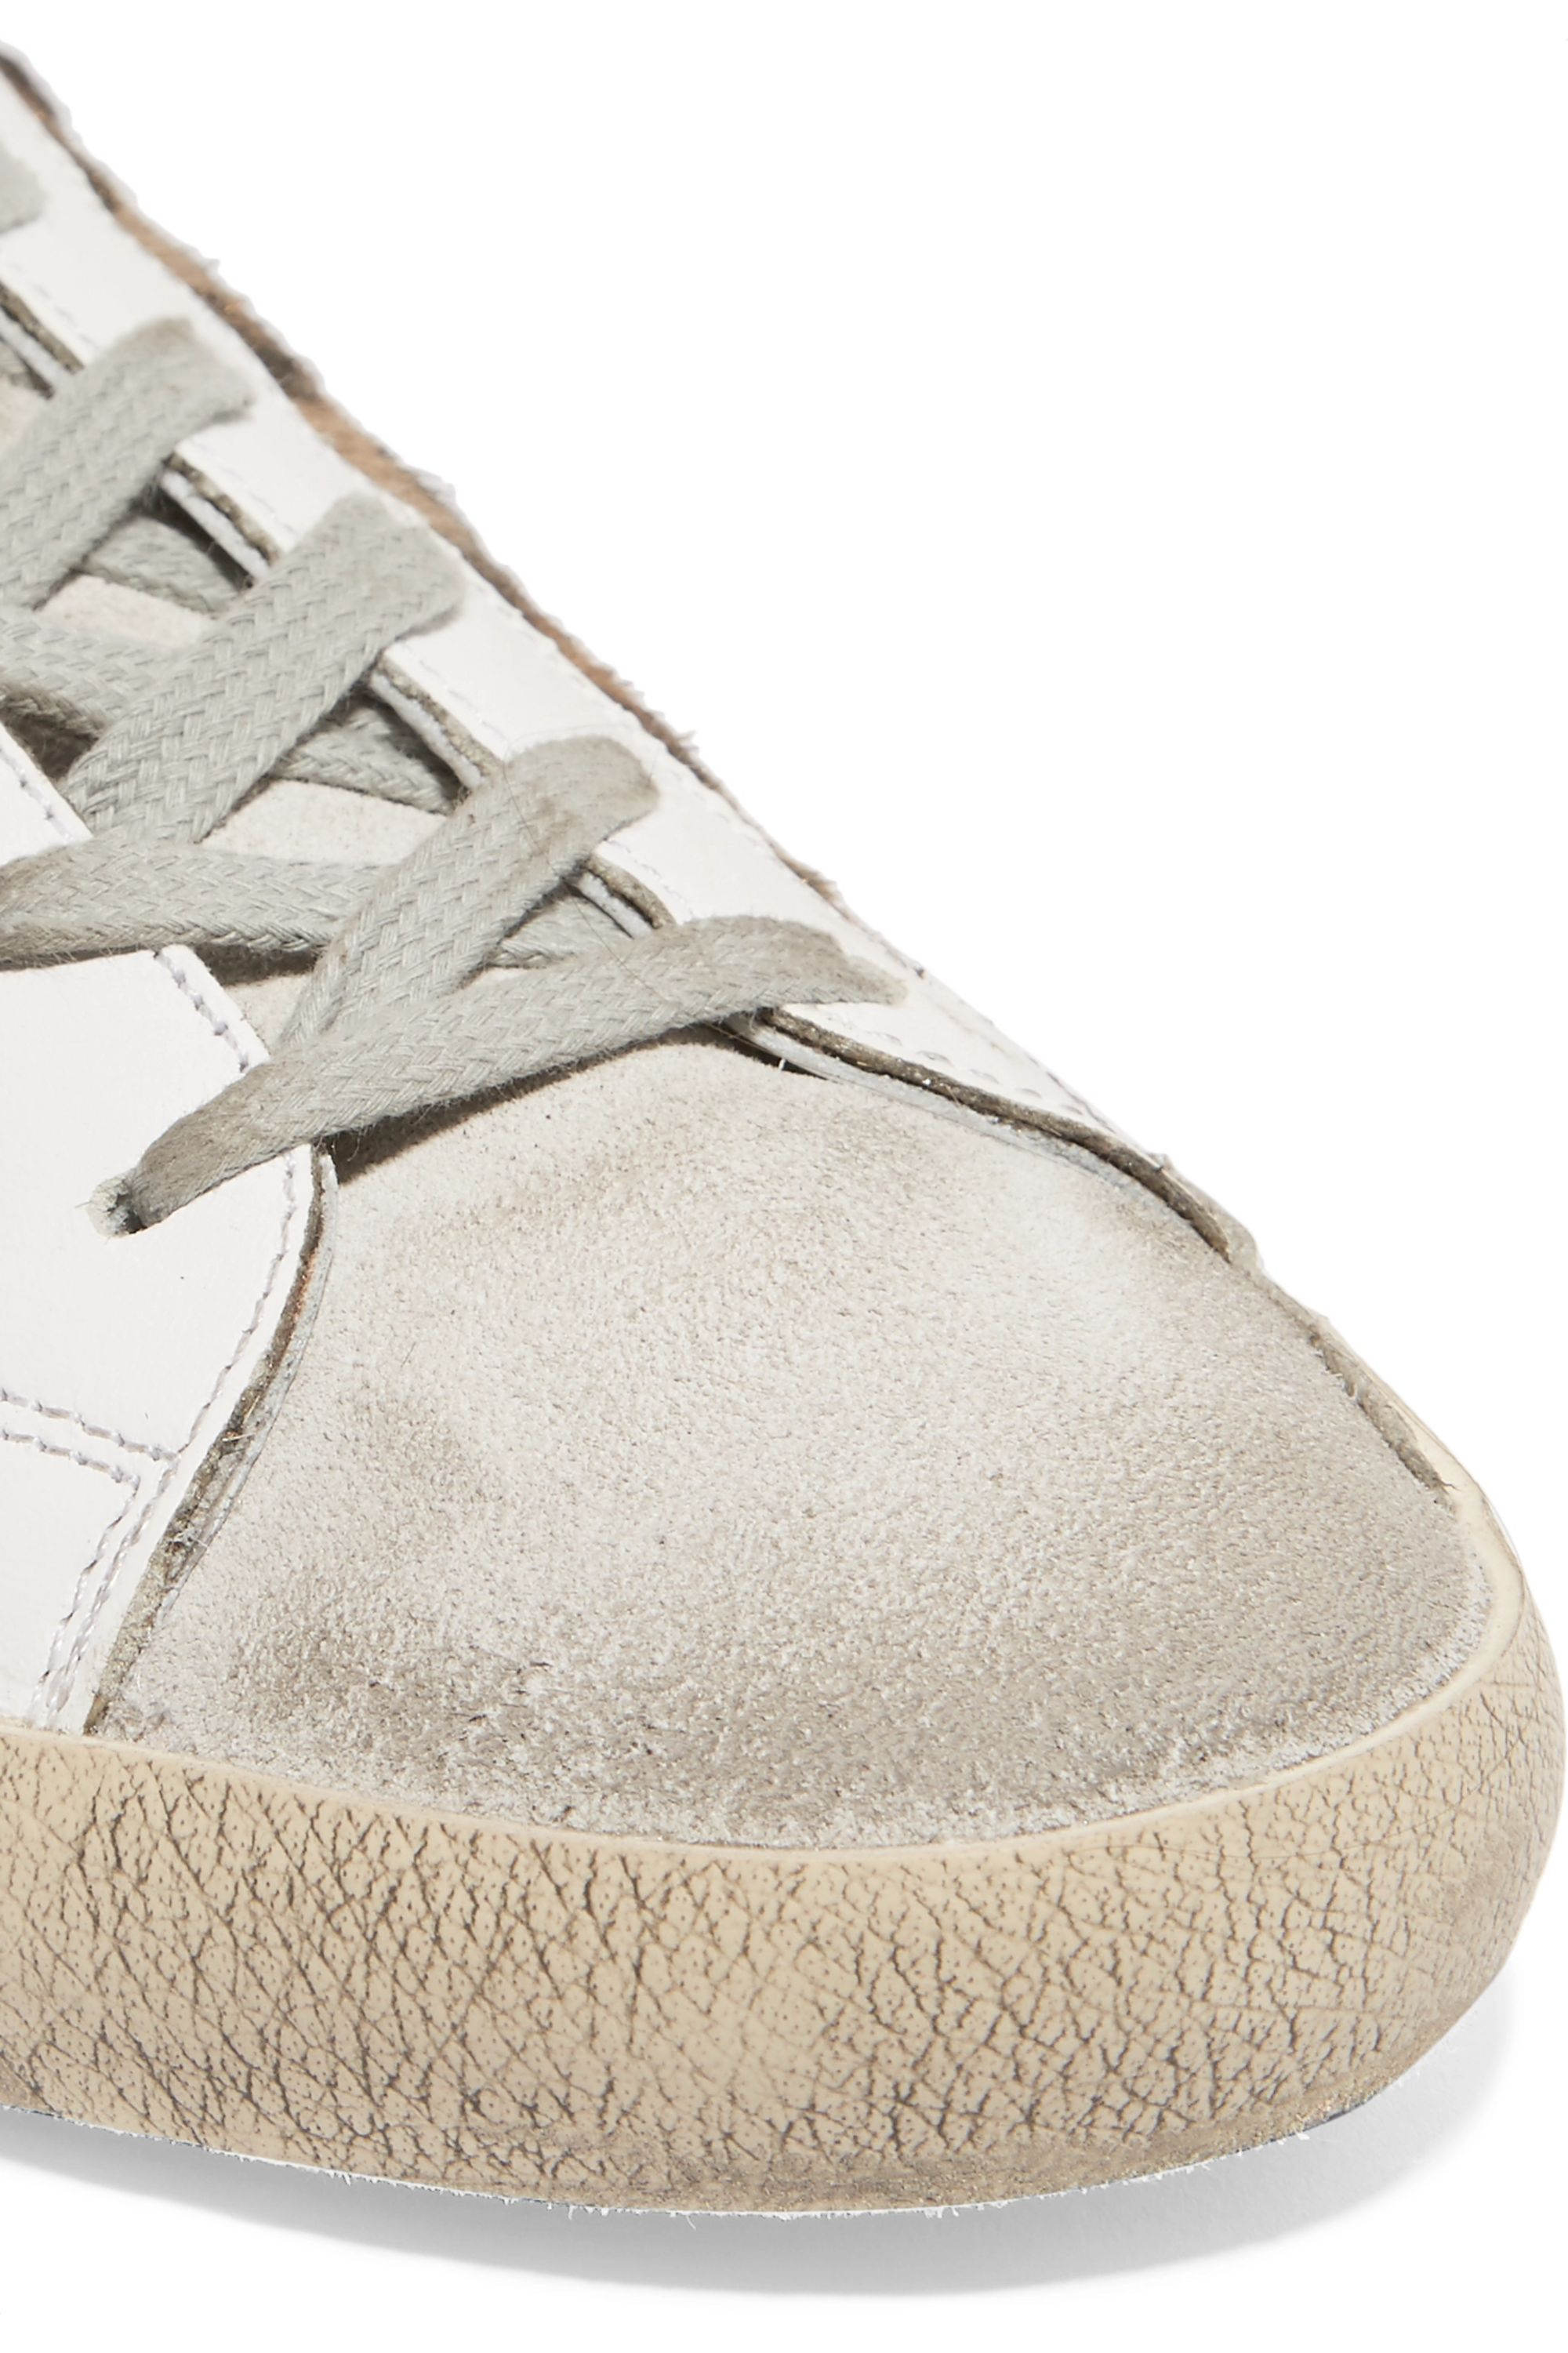 Golden Goose Superstar distressed leather and calf hair sneakers